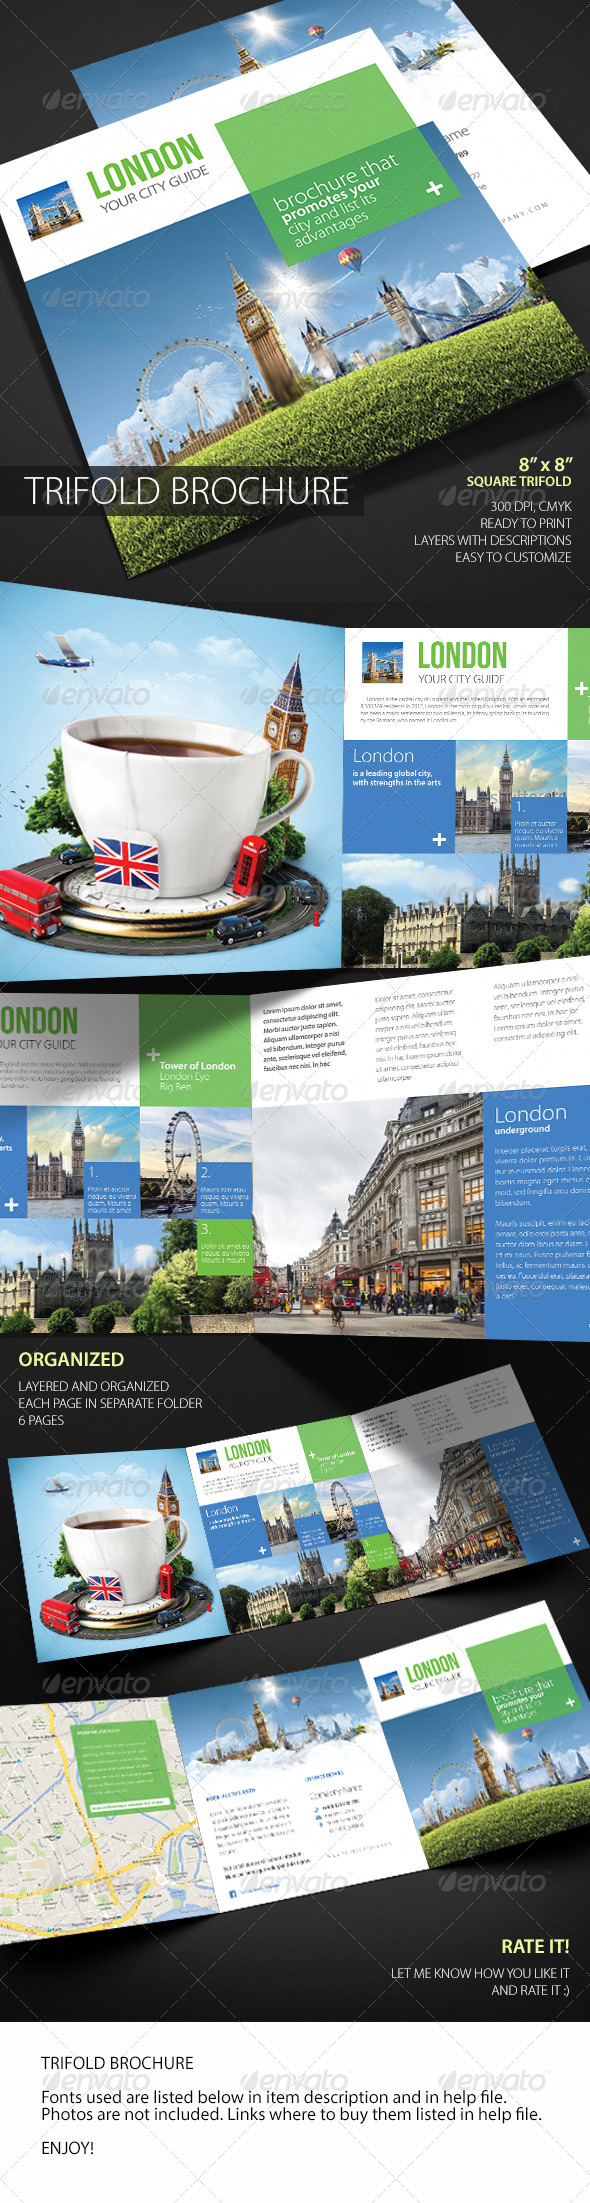 GraphicRiver Square Trifold Brochure 5971845